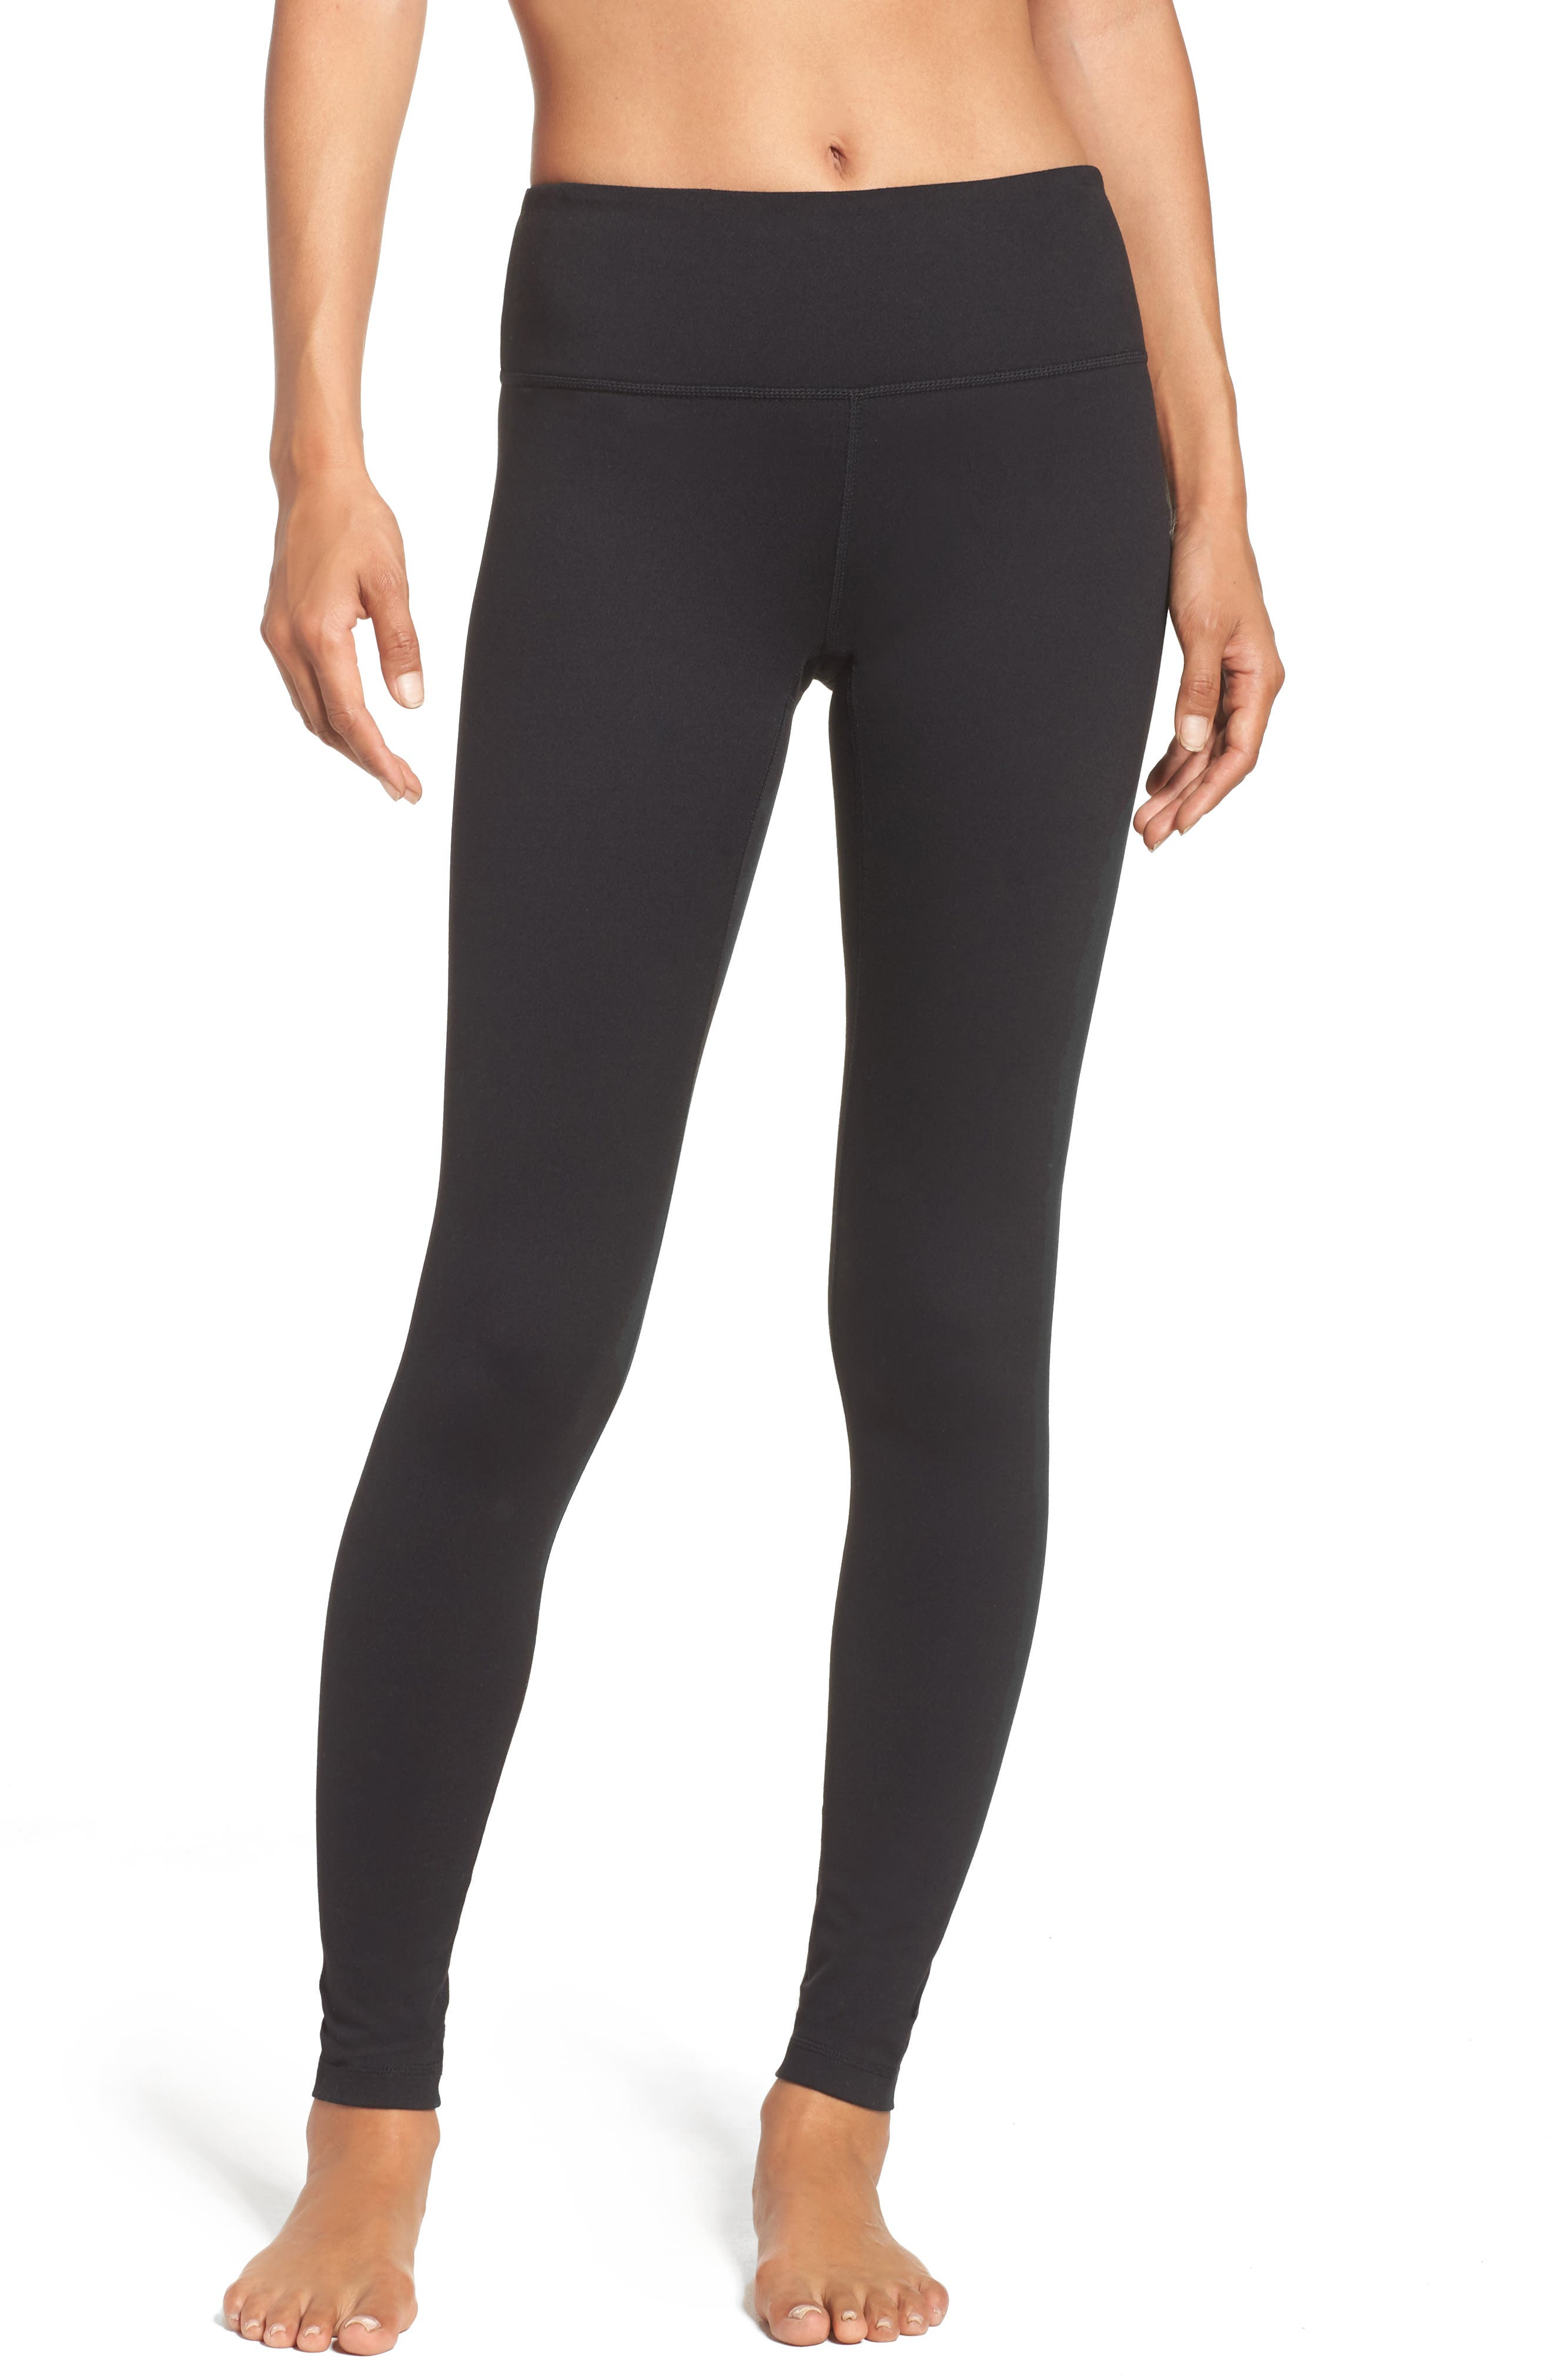 Power Live In Leggings,                         Main,                         color, Black